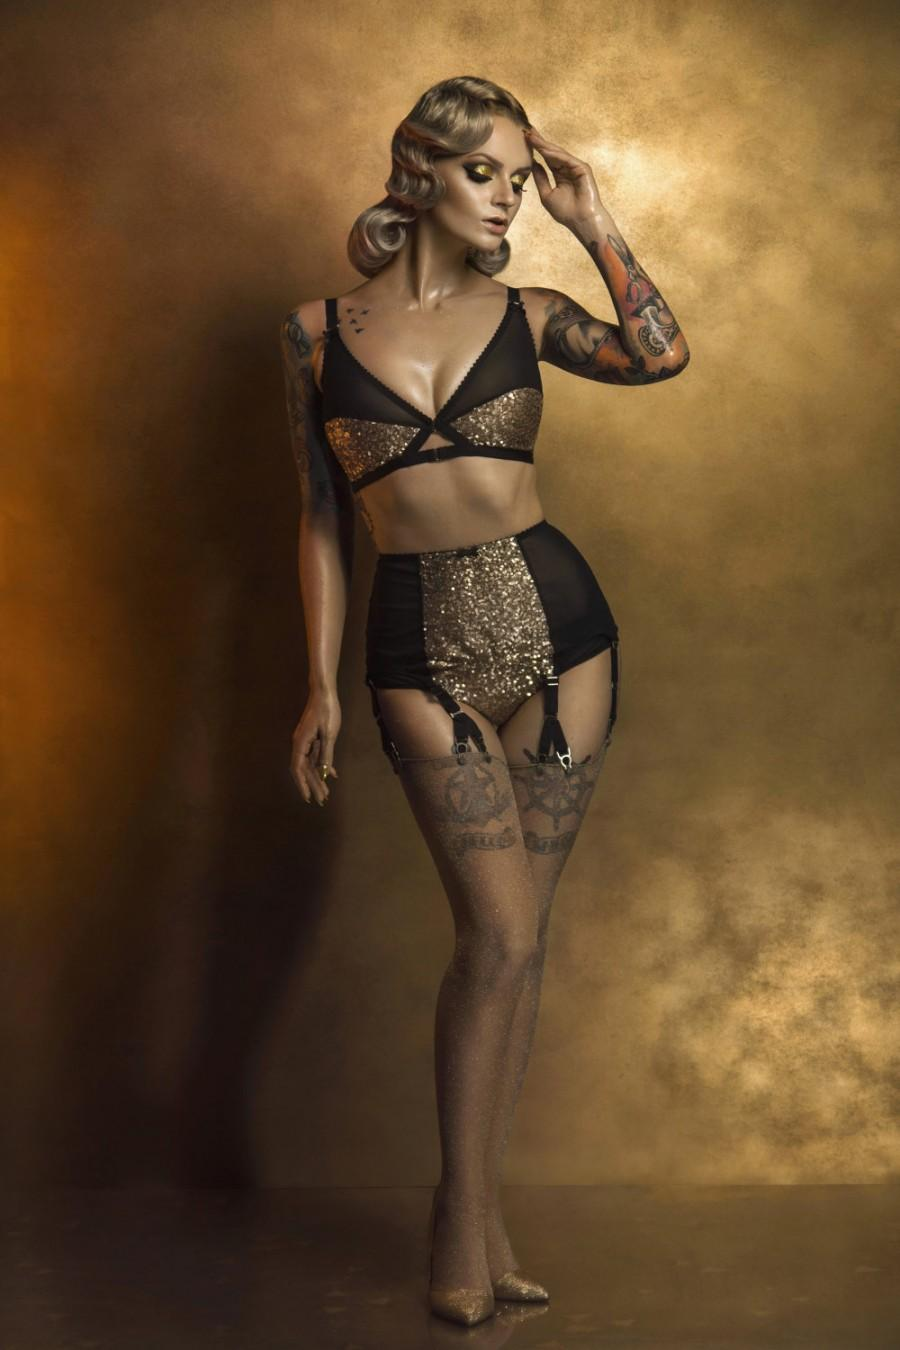 زفاف - Gold Sequin Knickers with black mesh, Glittery Burlesque panties. Vintage Style Lingerie by Pip & Pantalaimon. Plus Size. Sizes 8-22